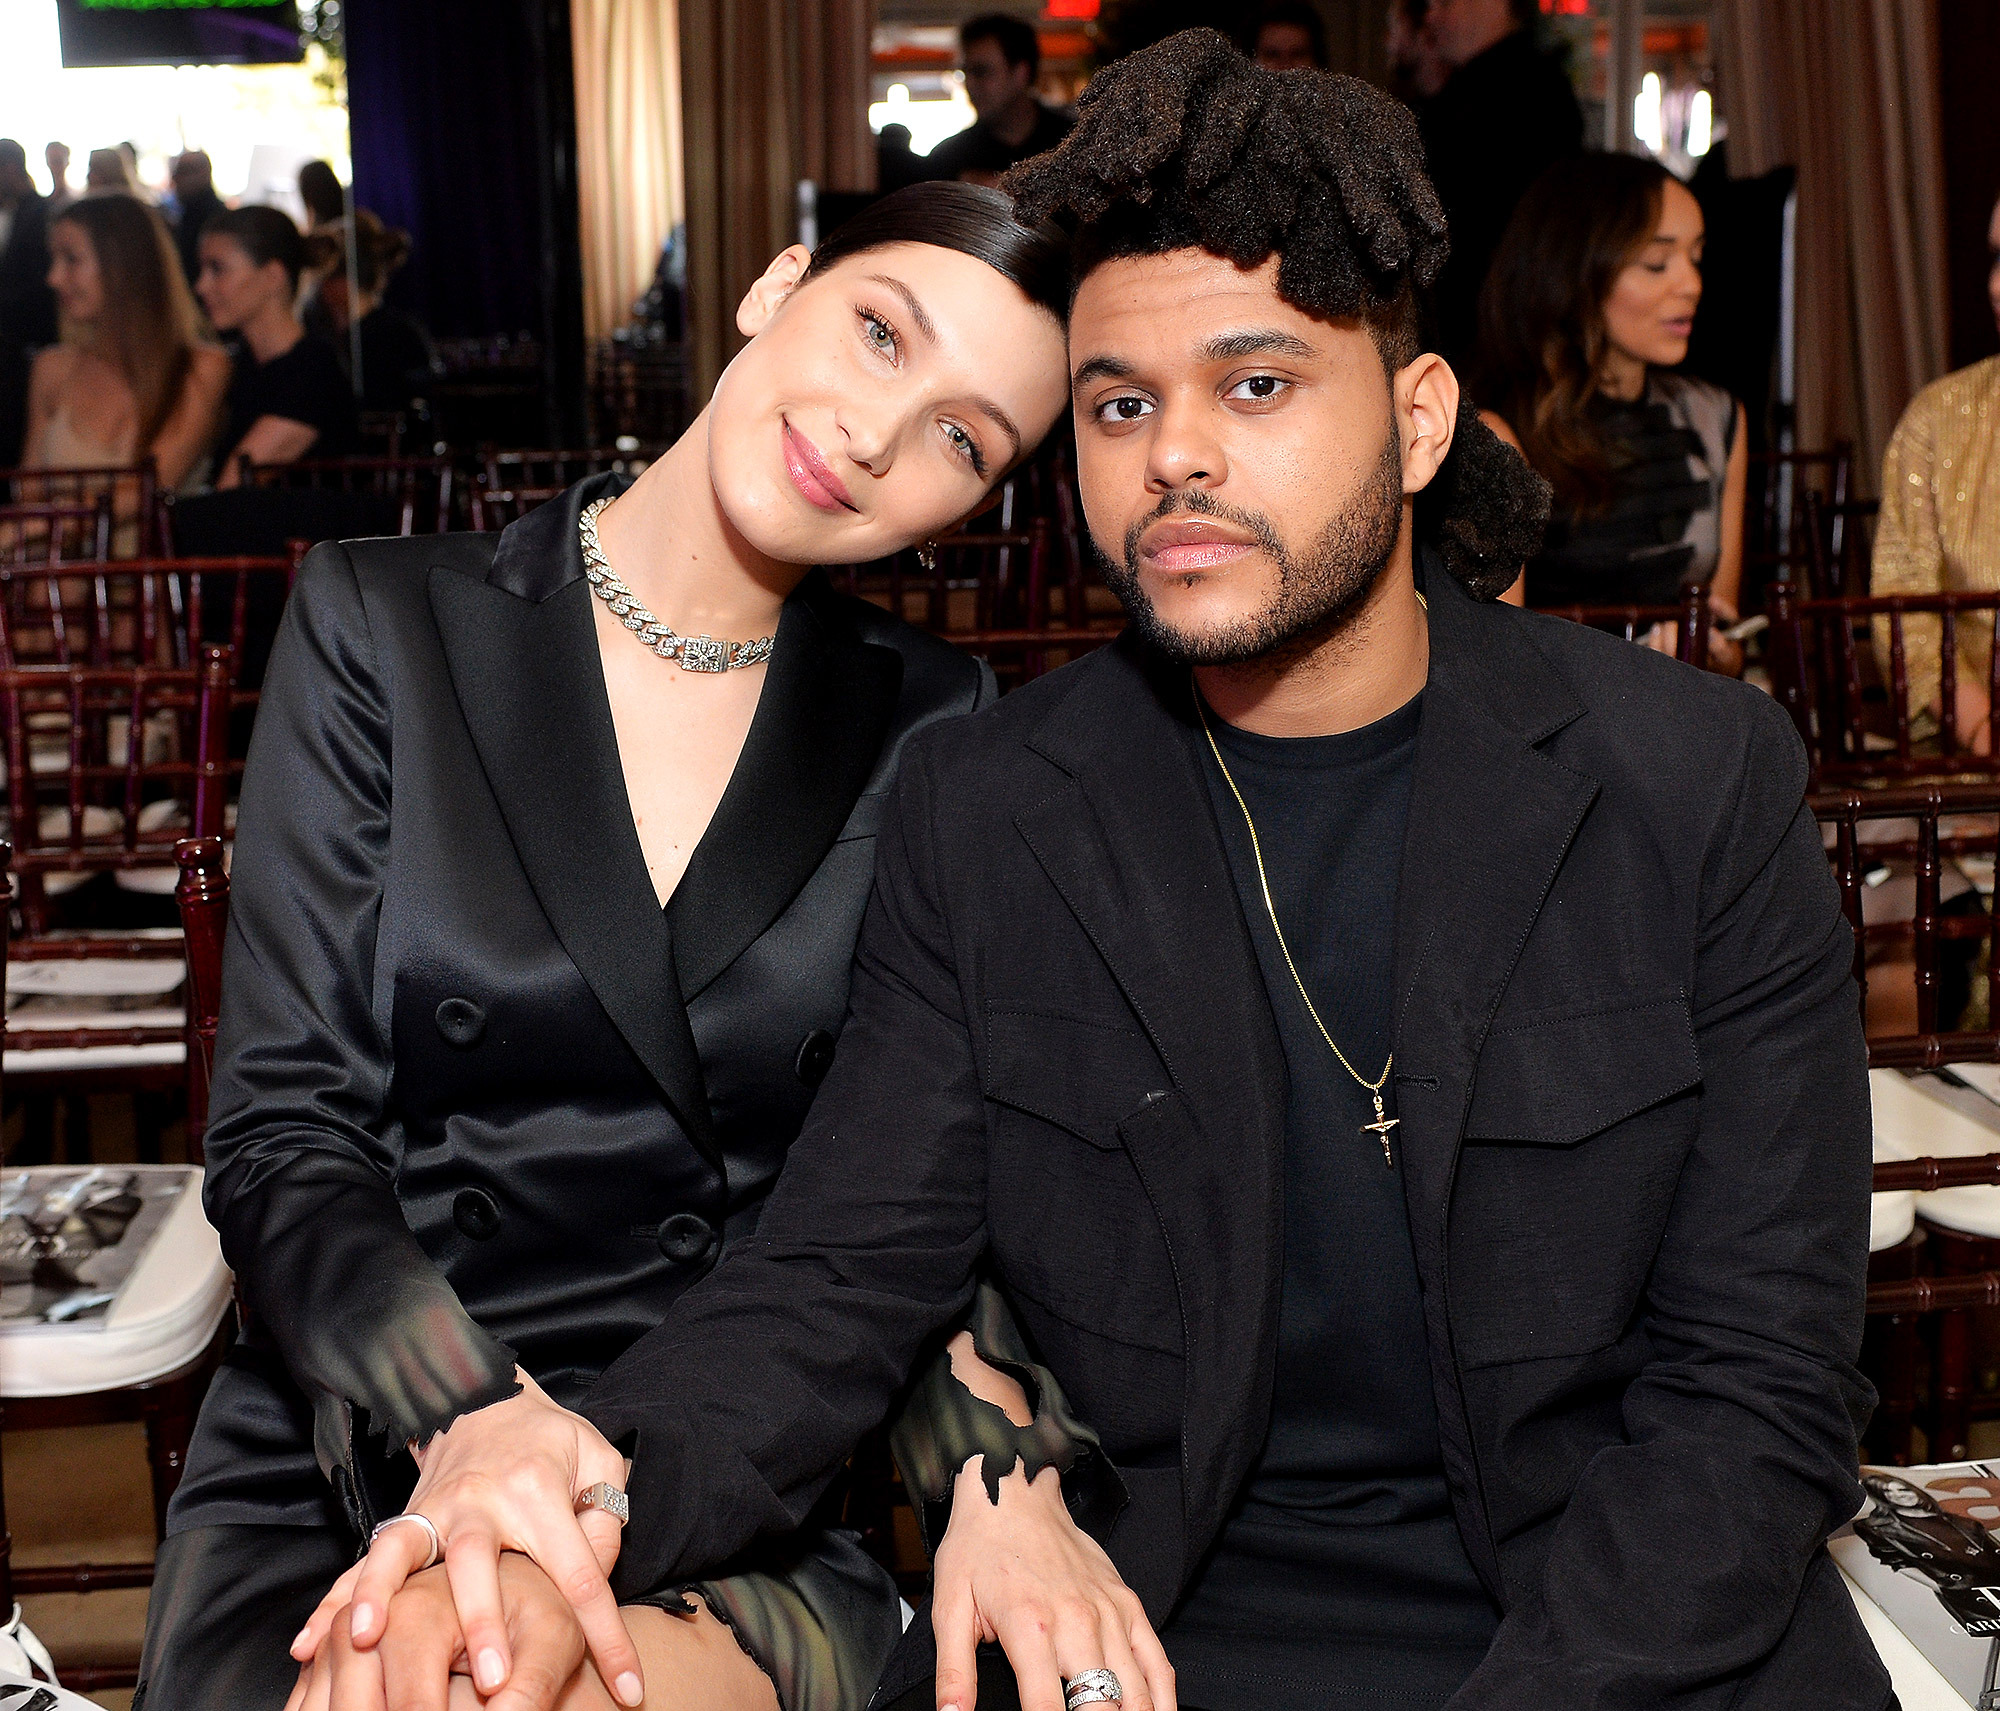 "WEST HOLLYWOOD, CA - MARCH 20: EXCLUSIVE COVERAGE Model of the Year Honoree Bella Hadid (L) and Abel ""The Weeknd"" Tesfaye attend The Daily Front Row ""Fashion Los Angeles Awards"" 2016 at Sunset Tower Hotel on March 20, 2016 in West Hollywood, California. (Photo by Stefanie Keenan/Getty Images for The Daily Front Row)"